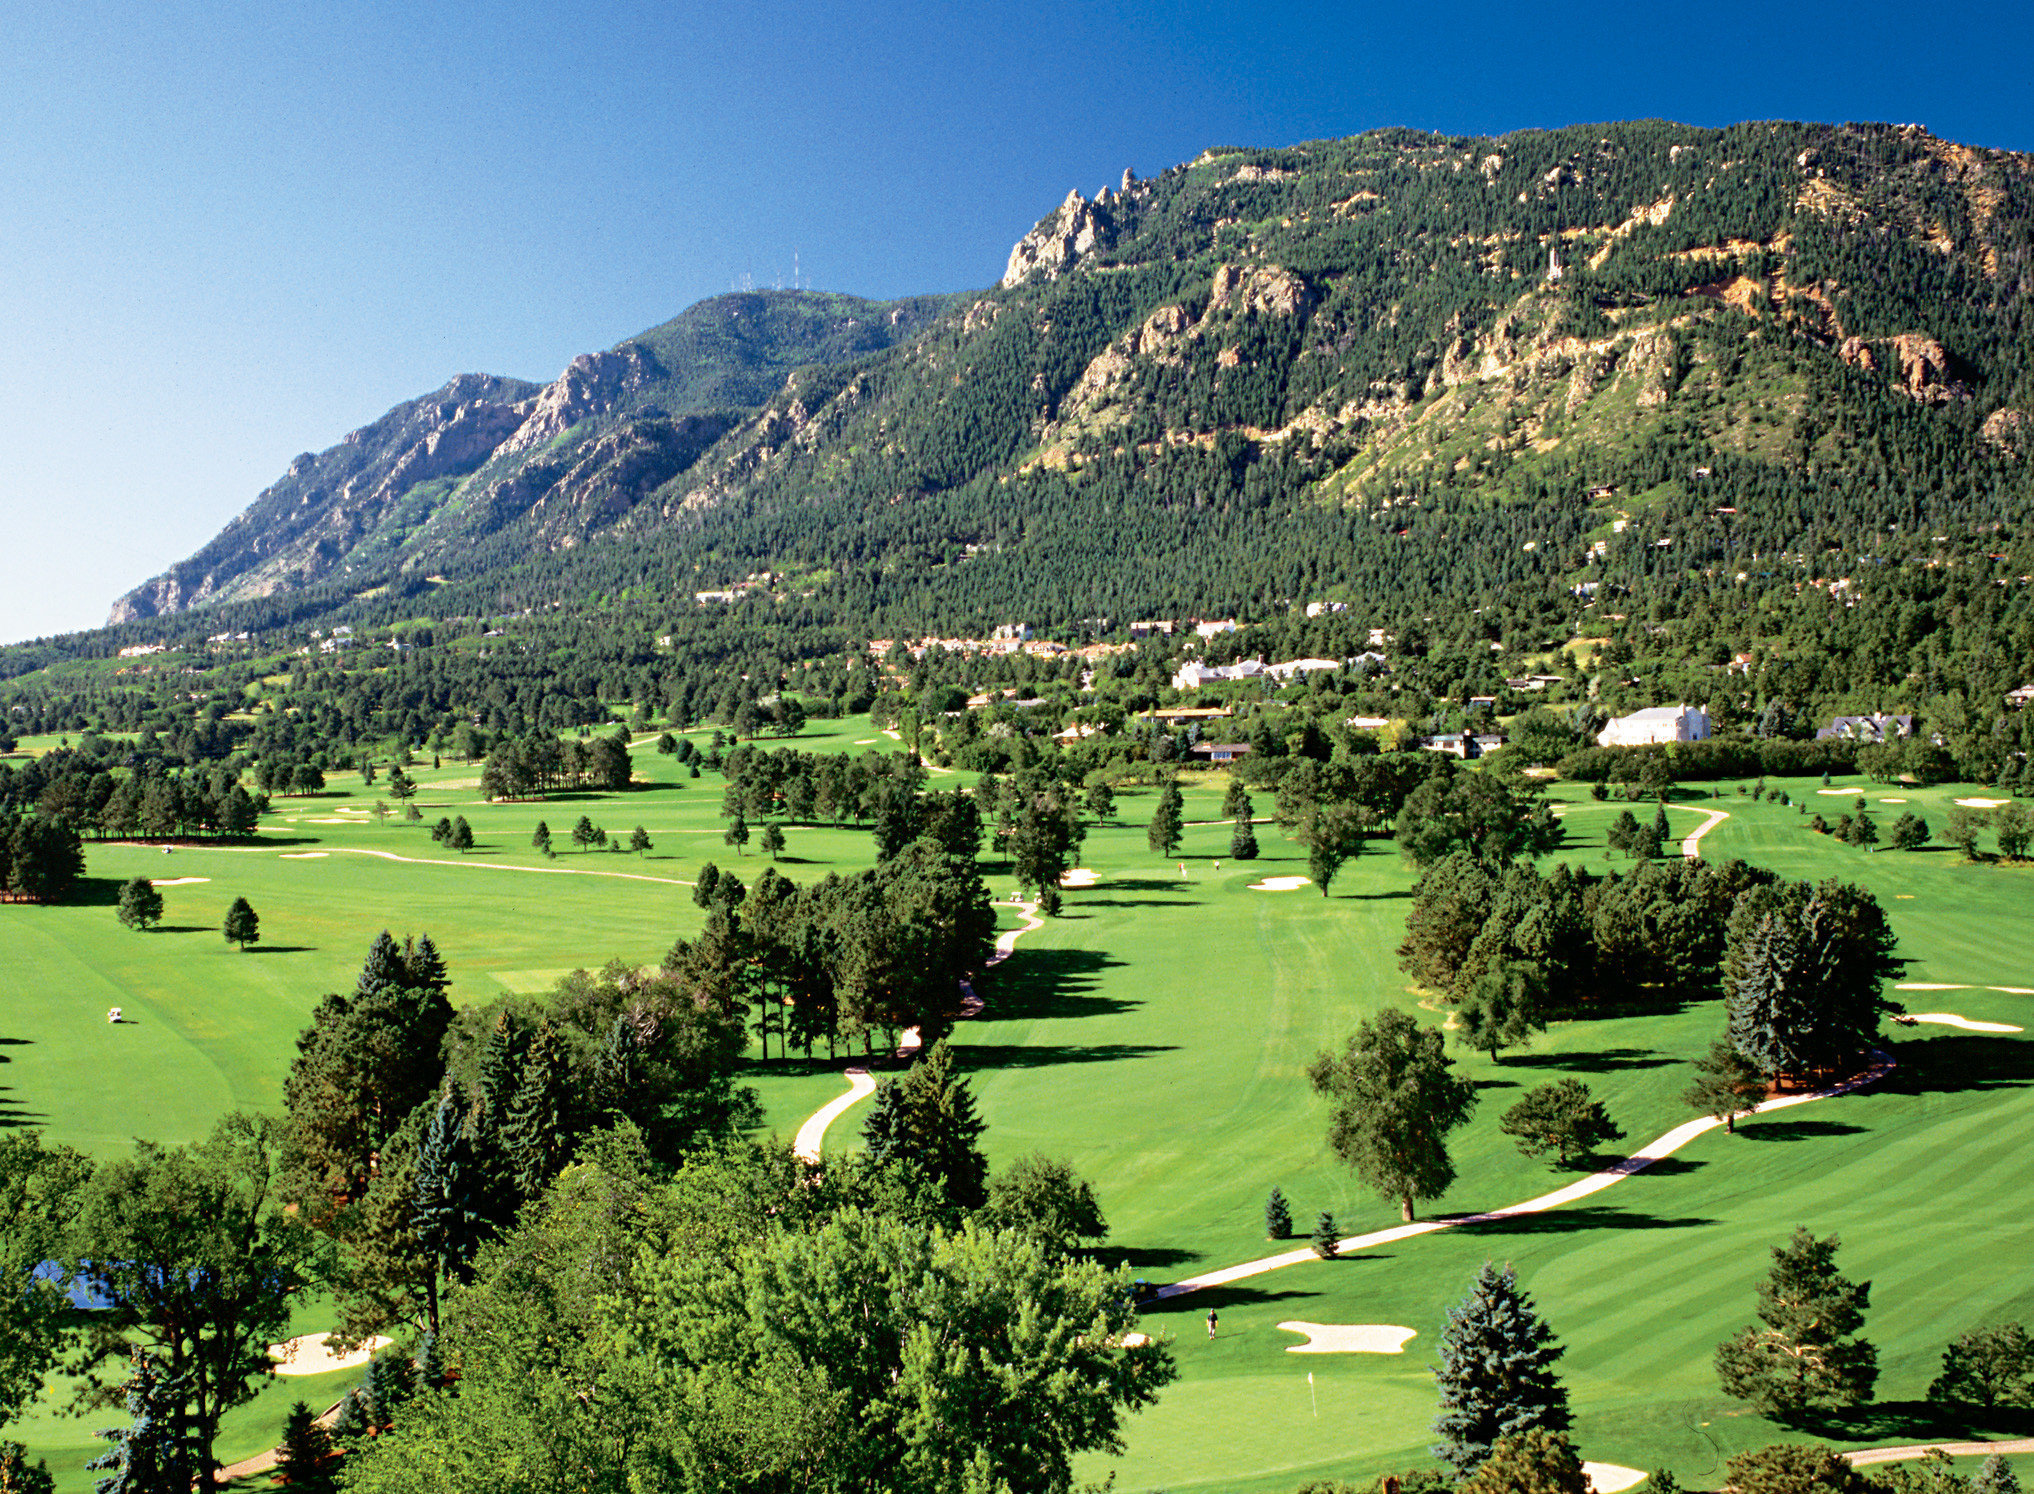 Buildings Exterior Grounds Mountains Outdoors Resort Scenic views mountain sky grass mountainous landforms Nature structure sport venue aerial photography green mountain range golf course hill sports rural area landscape valley Golf golf club plateau lush overlooking hillside highland